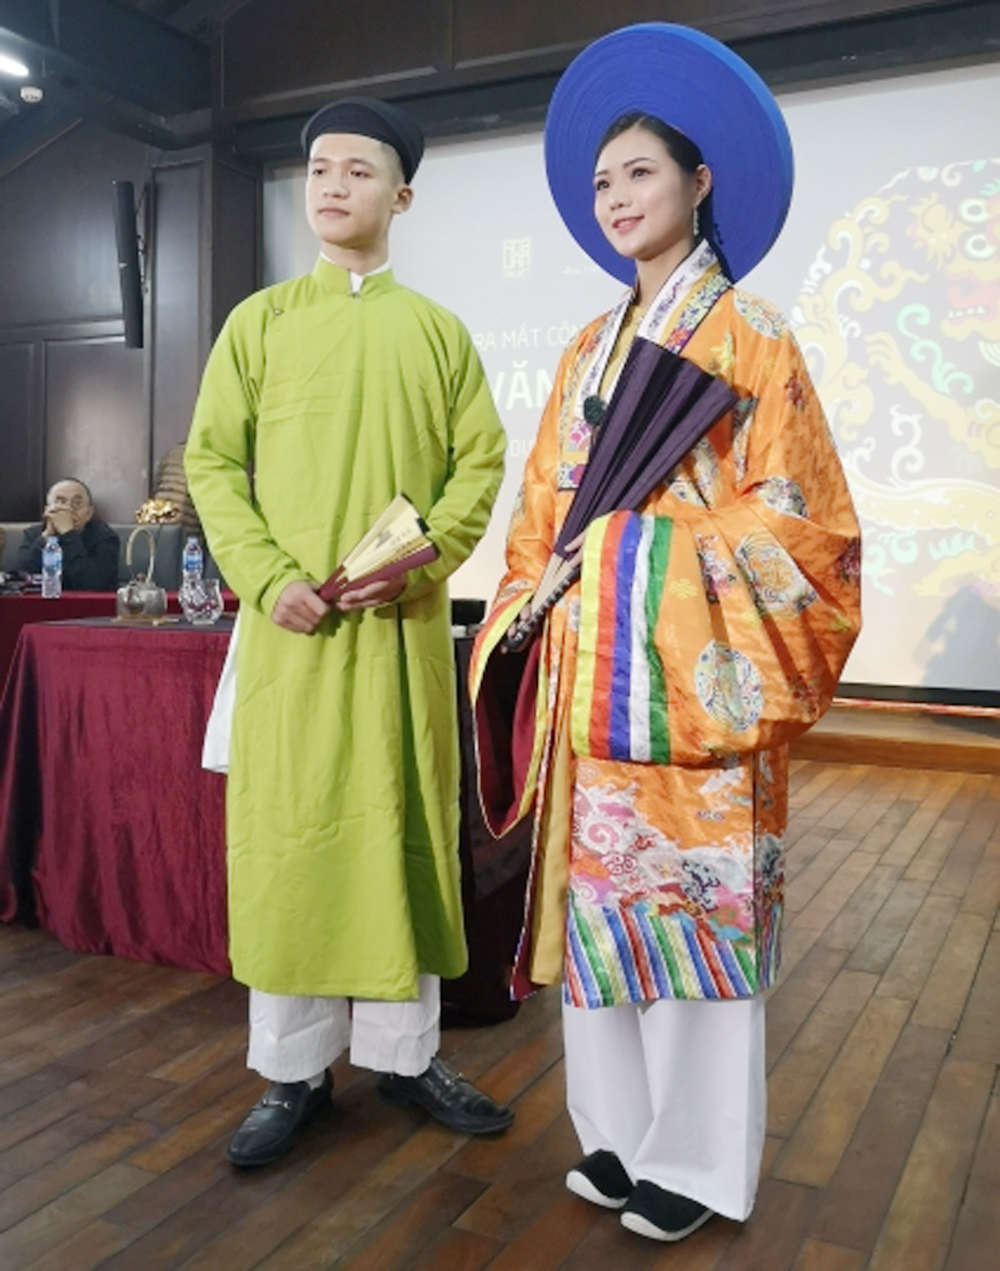 Hoa Van Dai Viet, ancient Vietnamese costumes, Nguyen Dynasty, Ly Dynasty, graphical technology, period costumes